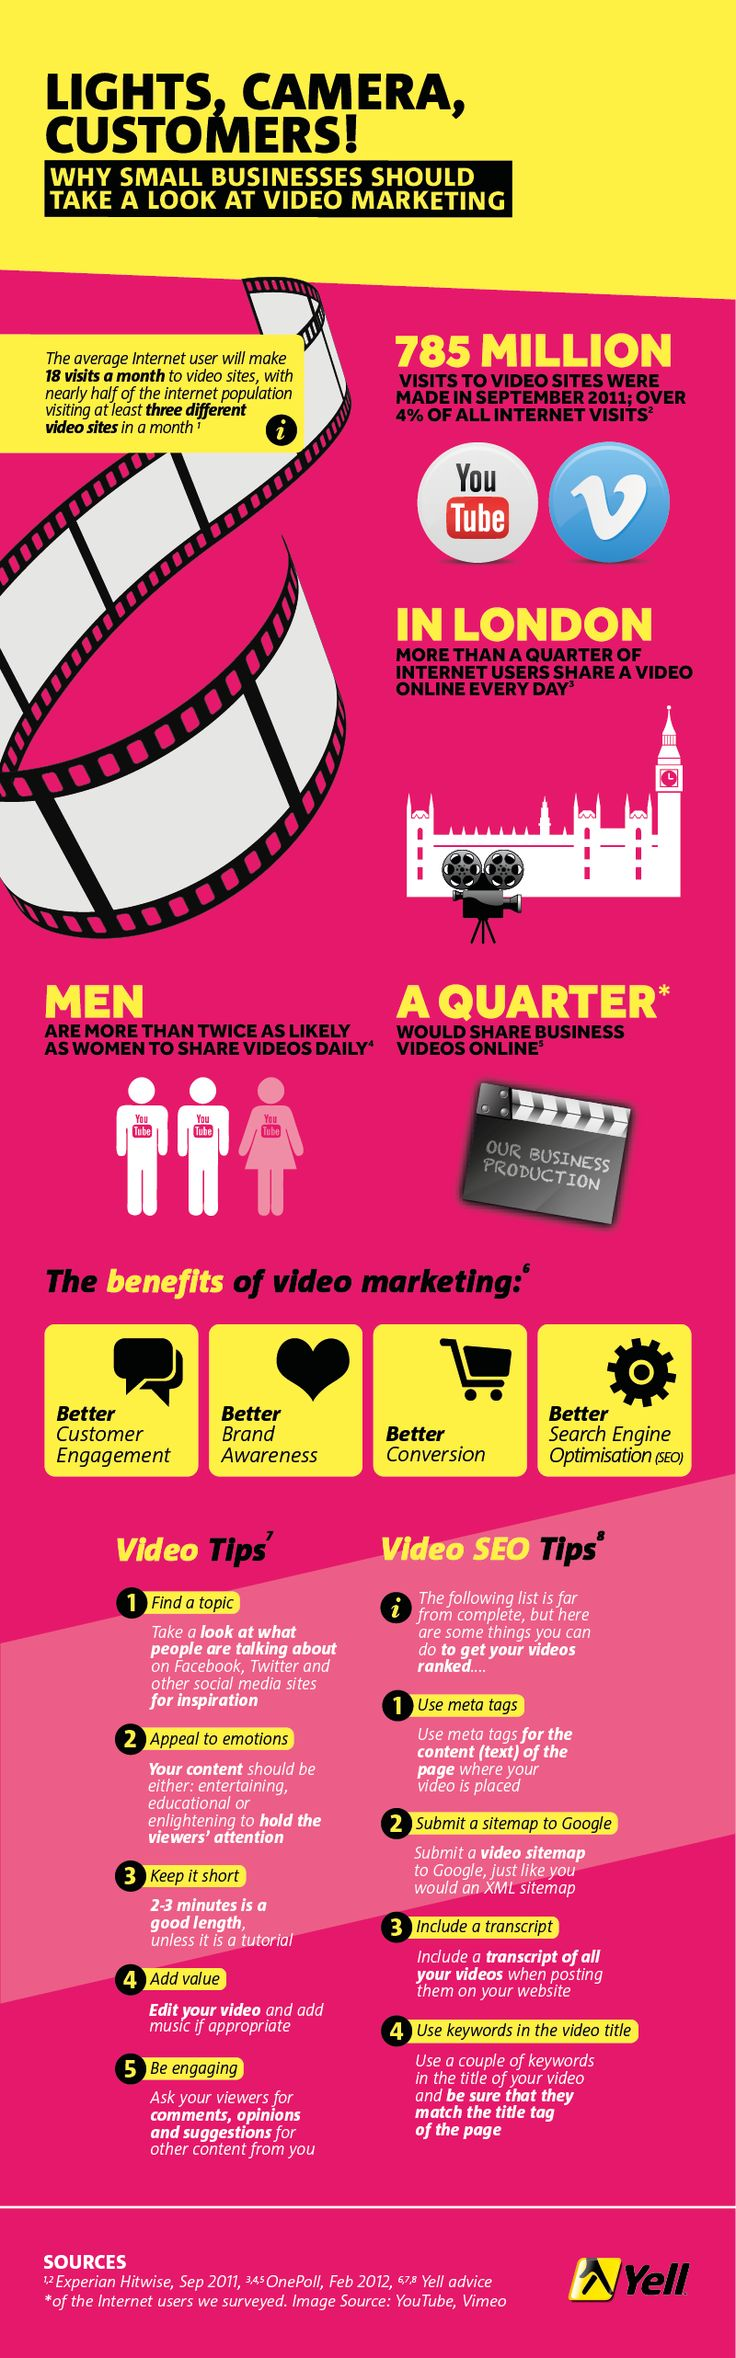 Lights, Camera, Customers: Why Small Businesses Should Take A Look At Video Marketing